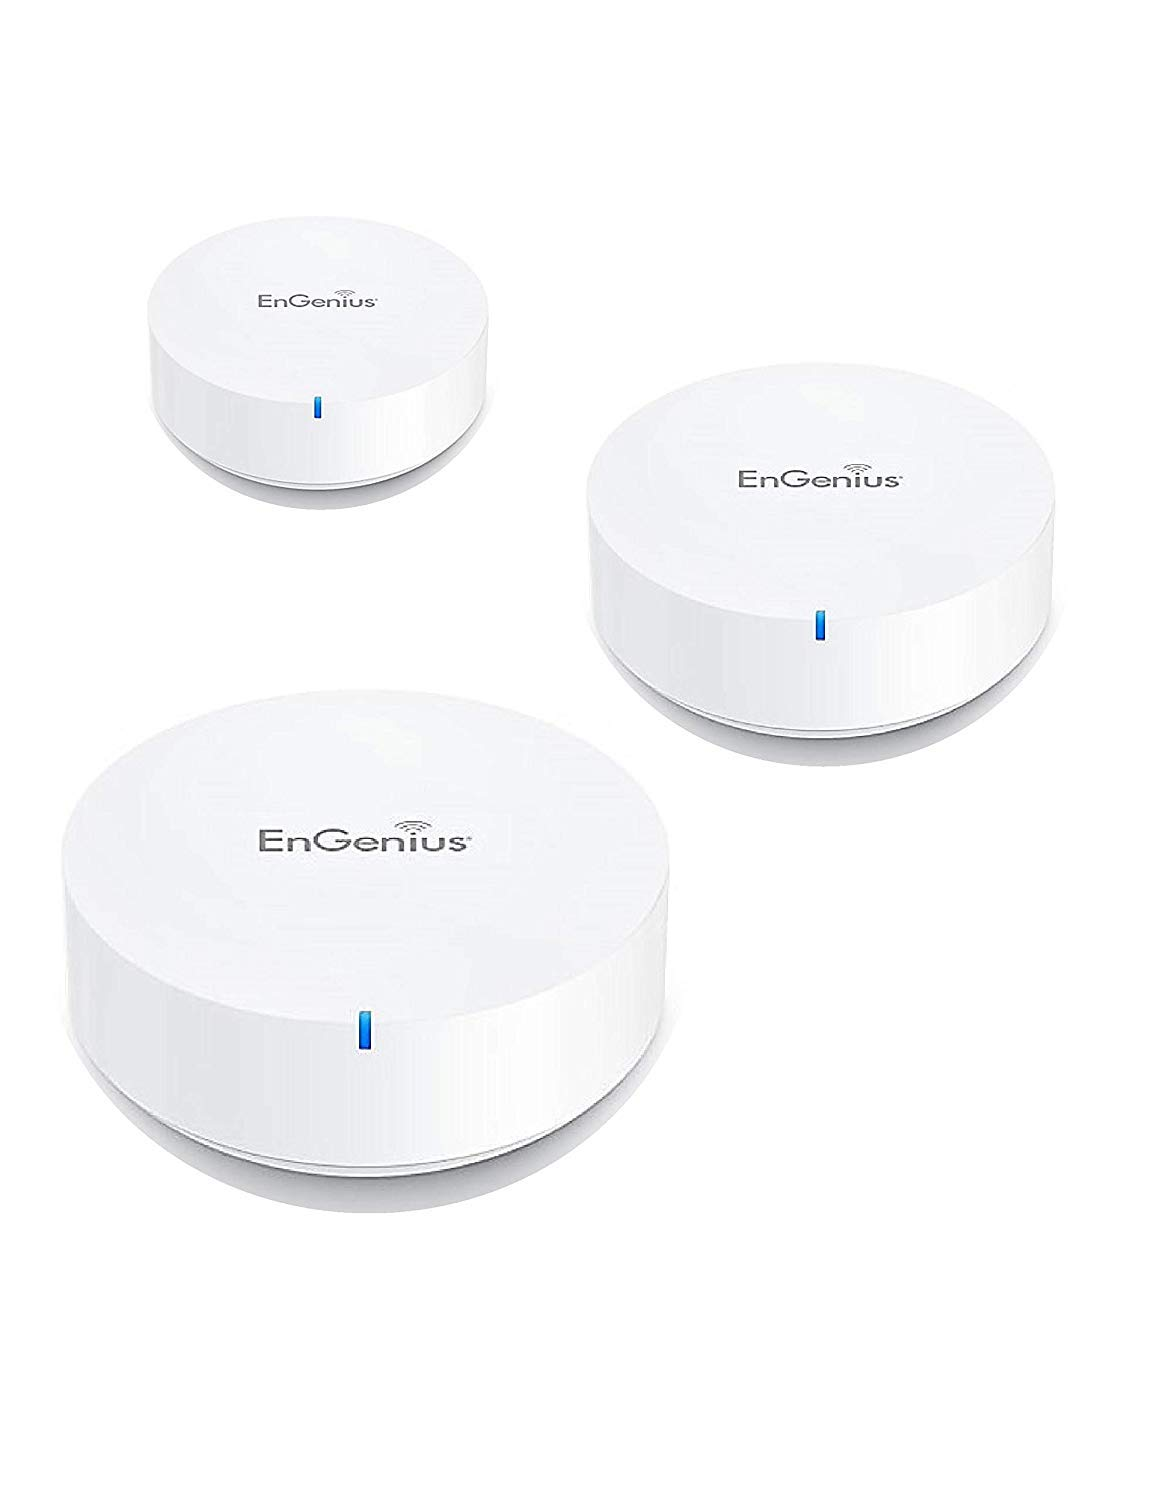 EnGenius Enmesh Whole-Home Smart Wi-Fi System, AC1300 Dual-Band (ESR530) (3-Pack) by EnGenius